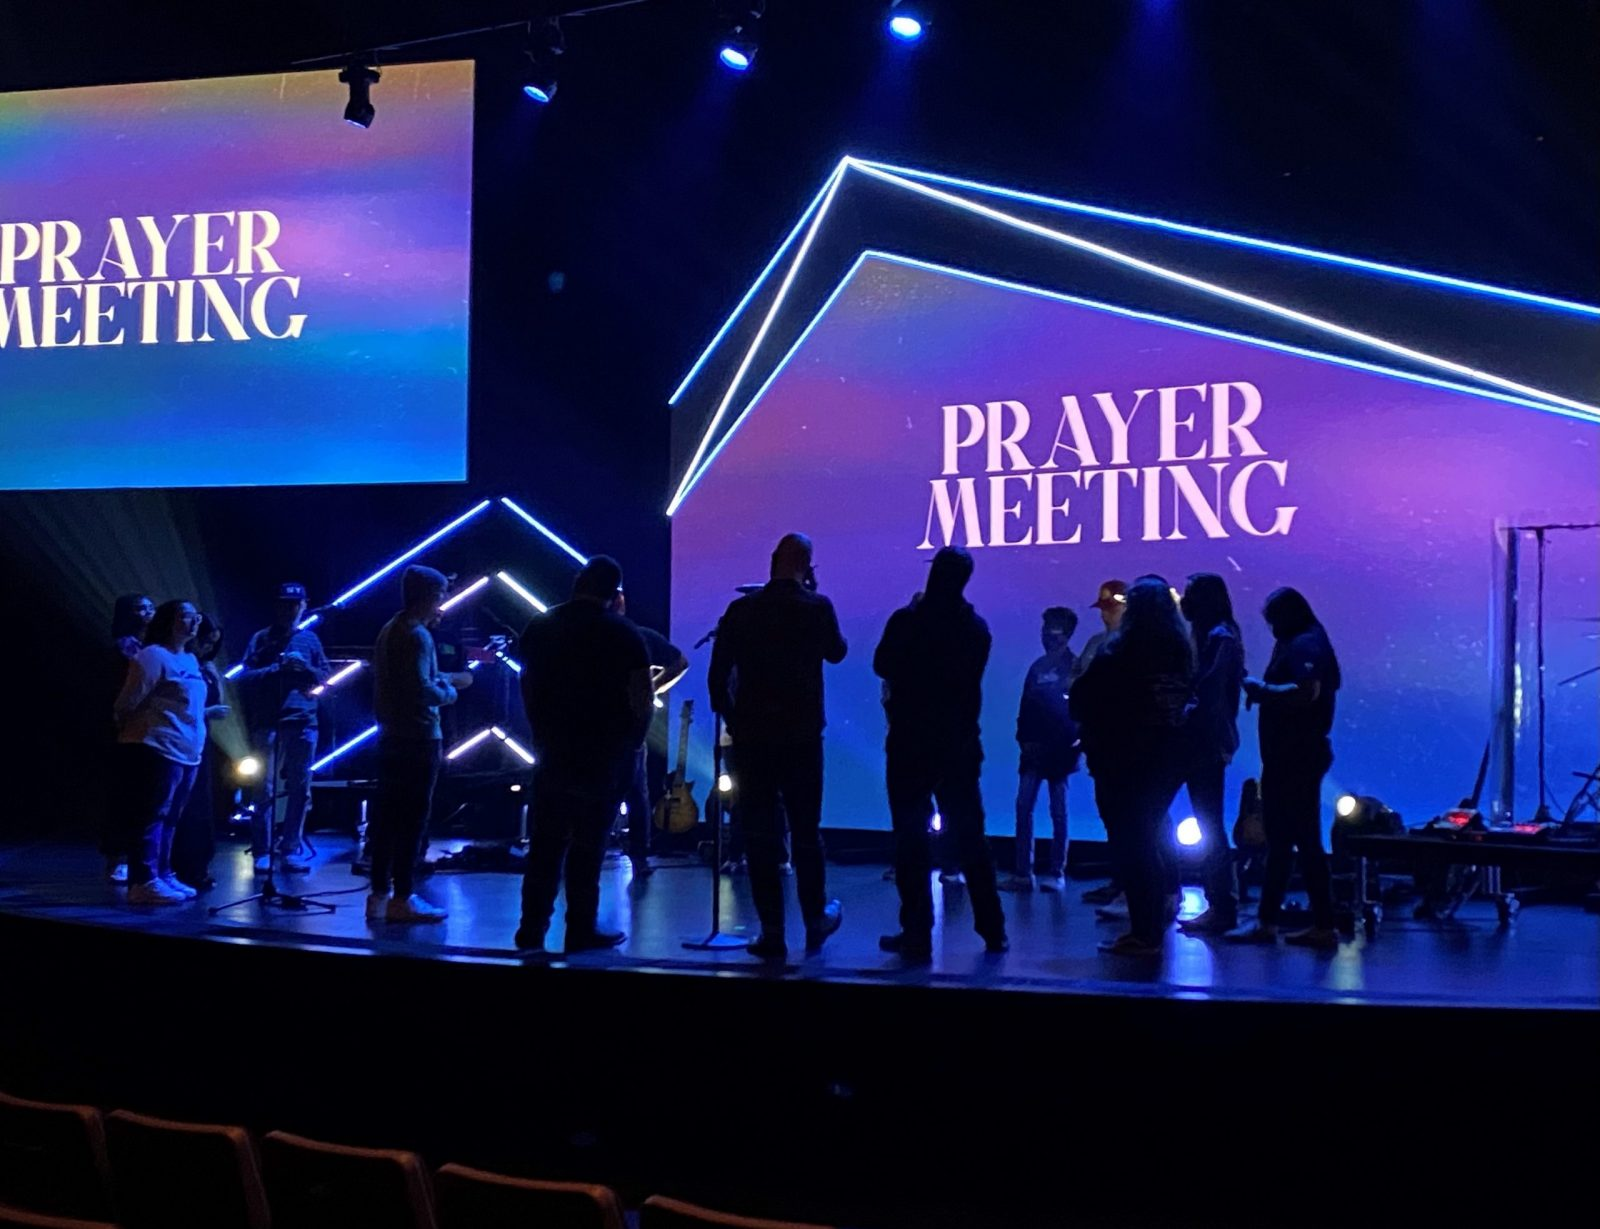 People on stage praying before church service